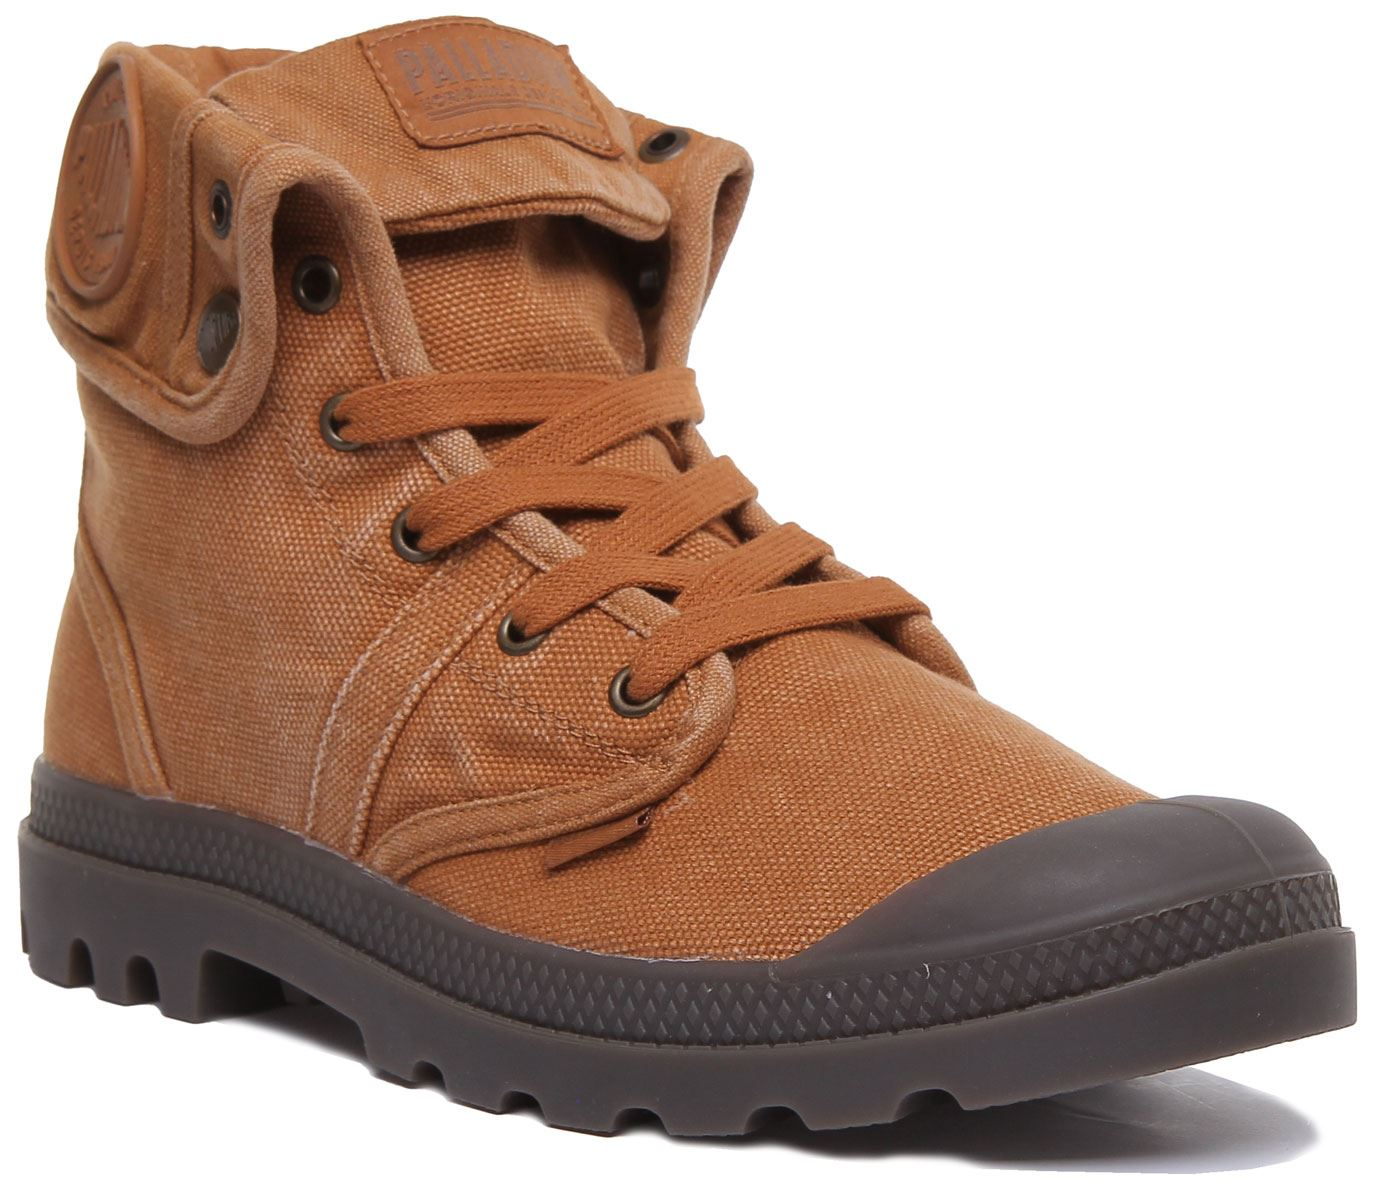 miniature 11 - Palladium Pallabrouse Baggy Rust Bottines Us Baggy Washed Taille UK 6 - 12